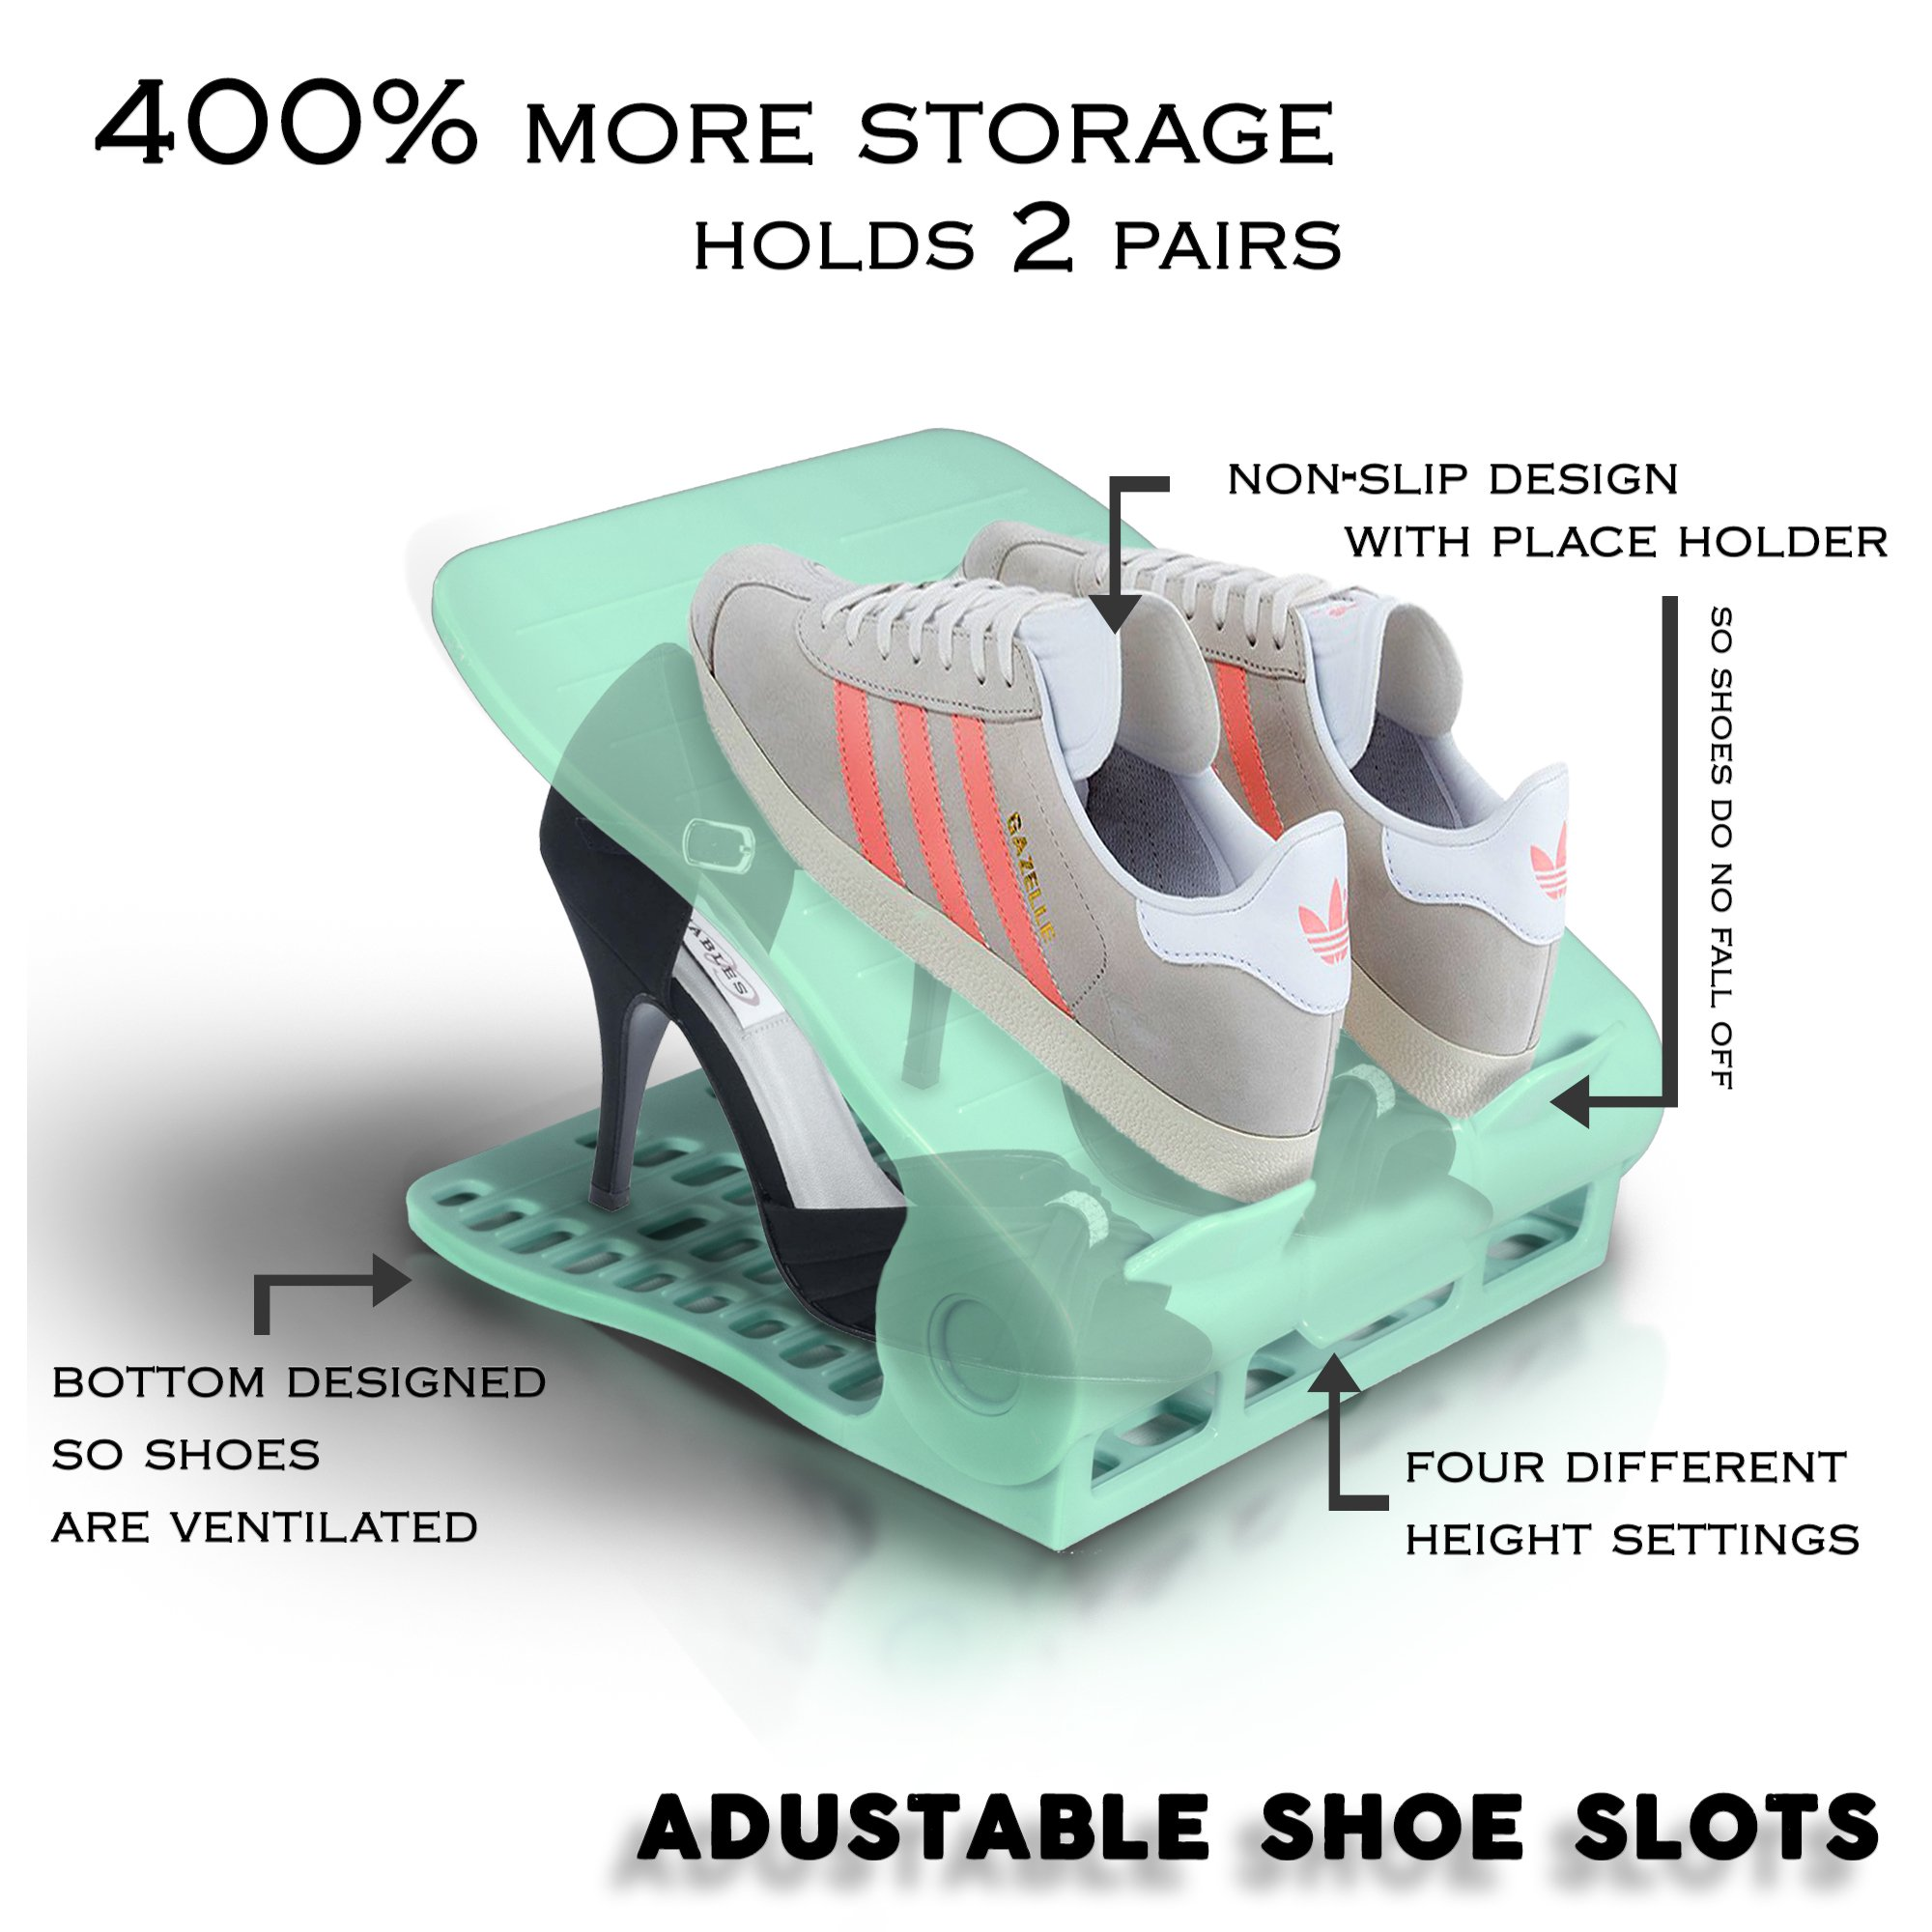 [UPGRADED] Shoe Organizer - Adjustable Display Closet Space Saver - Small Double Rack Shoe Slot for 1 Pair - Pink - 20 Pcs by Stark (Image #3)